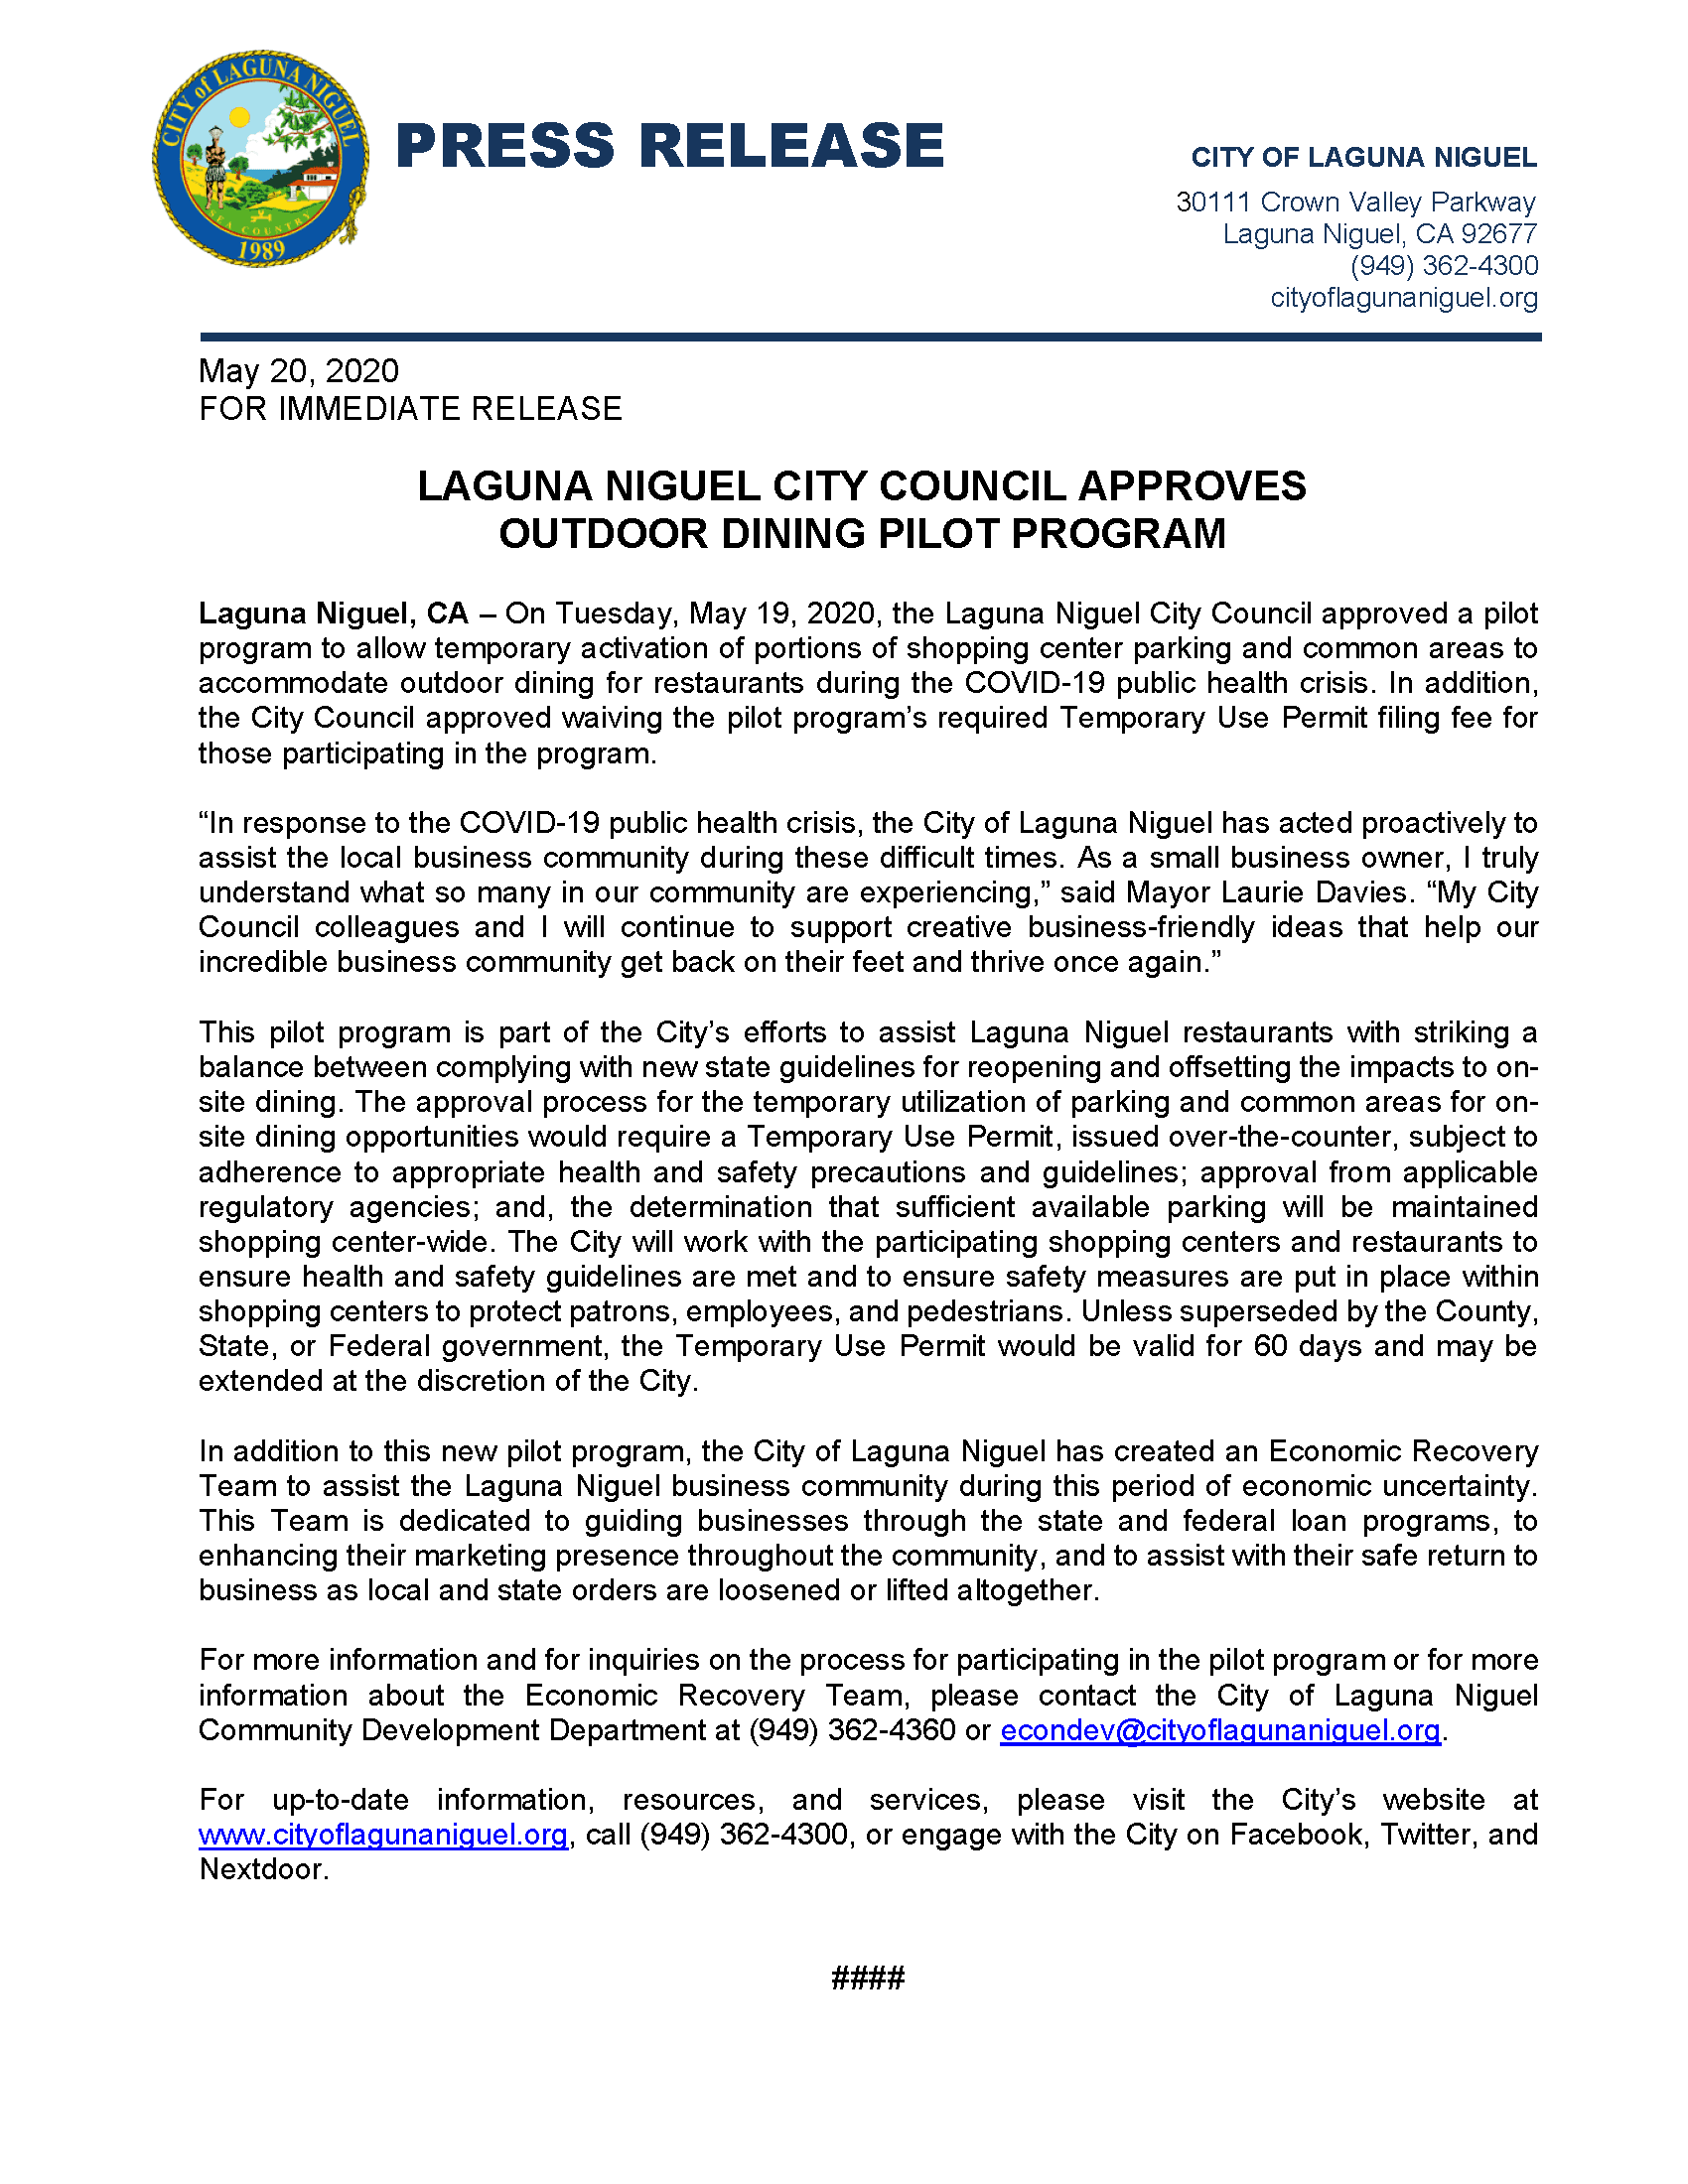 Press Release - Outdoor Dining Pilot Program